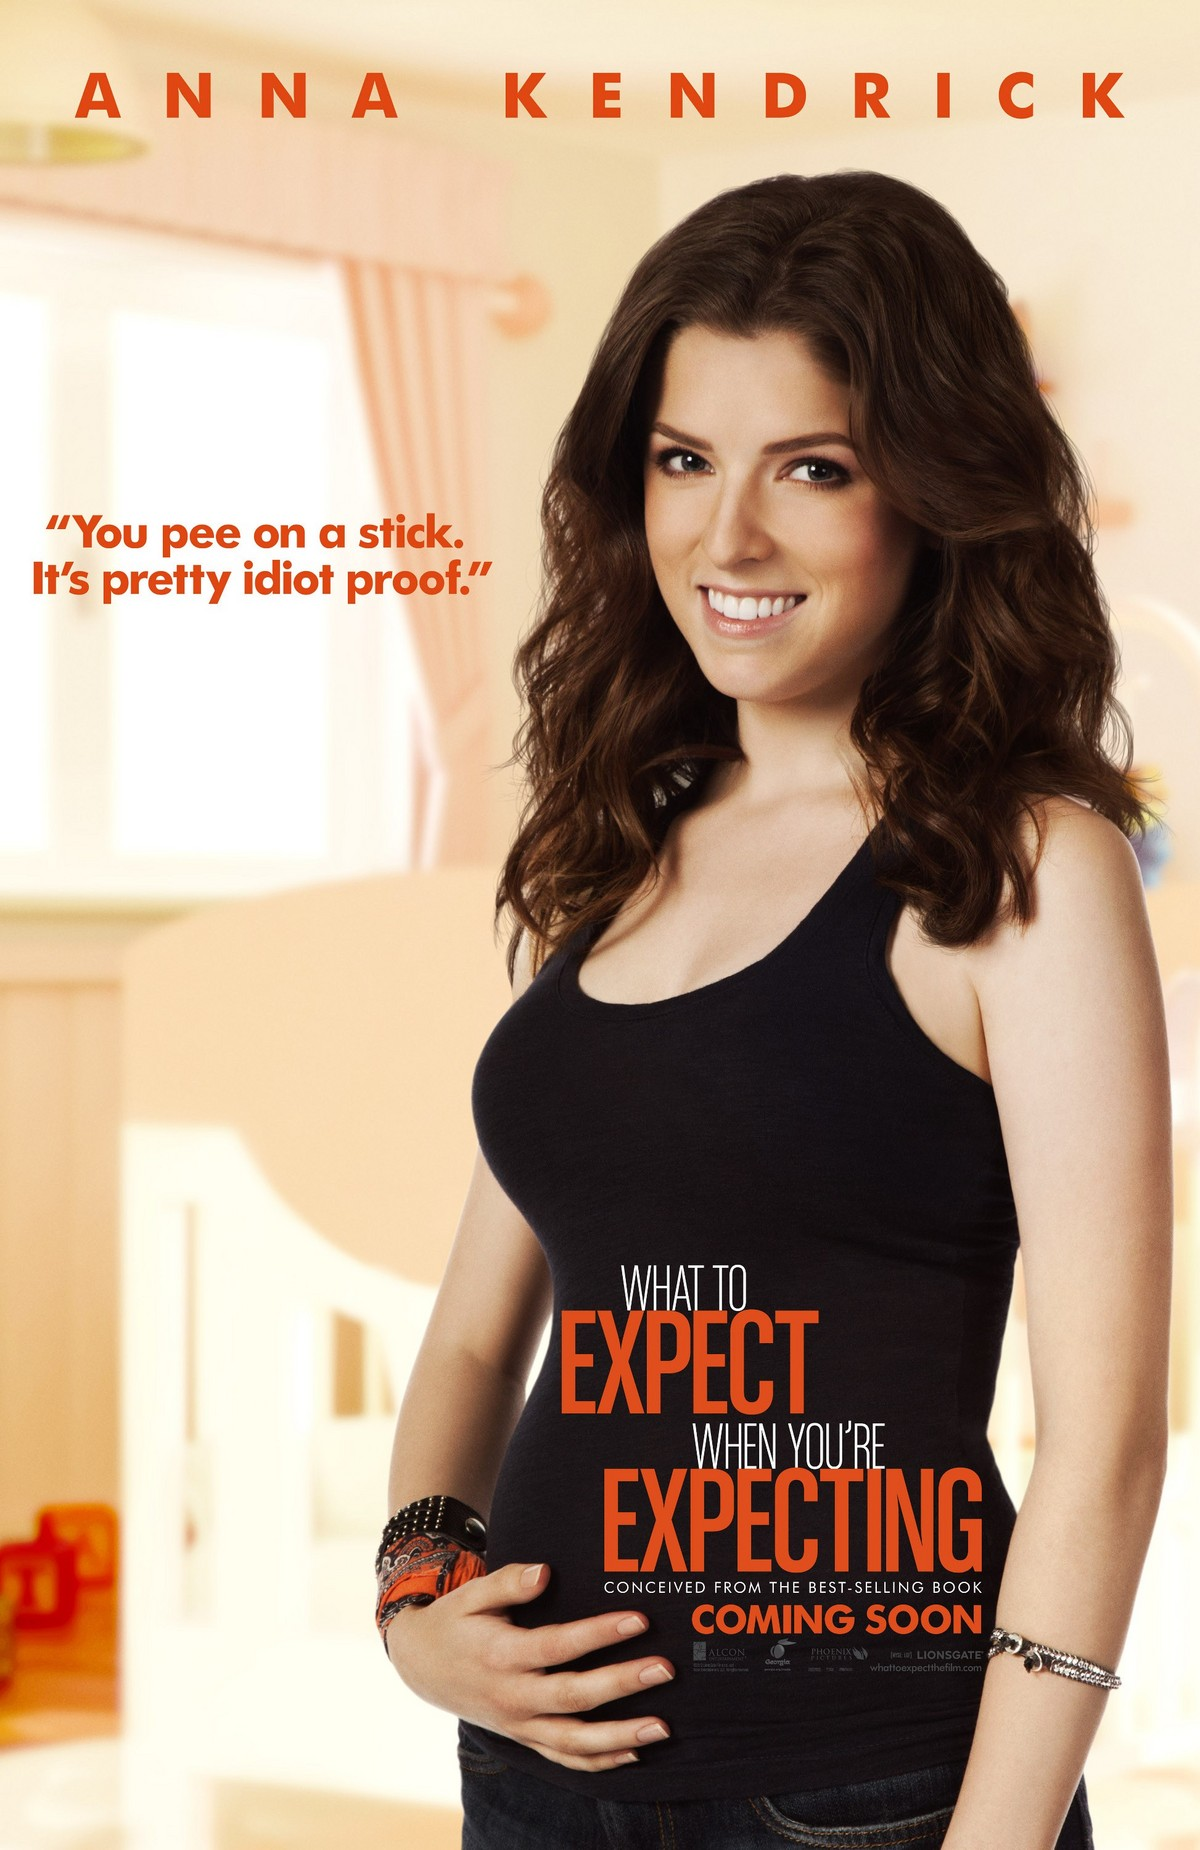 What to Expect When You're Expecting - Movie Poster #3 (Original)